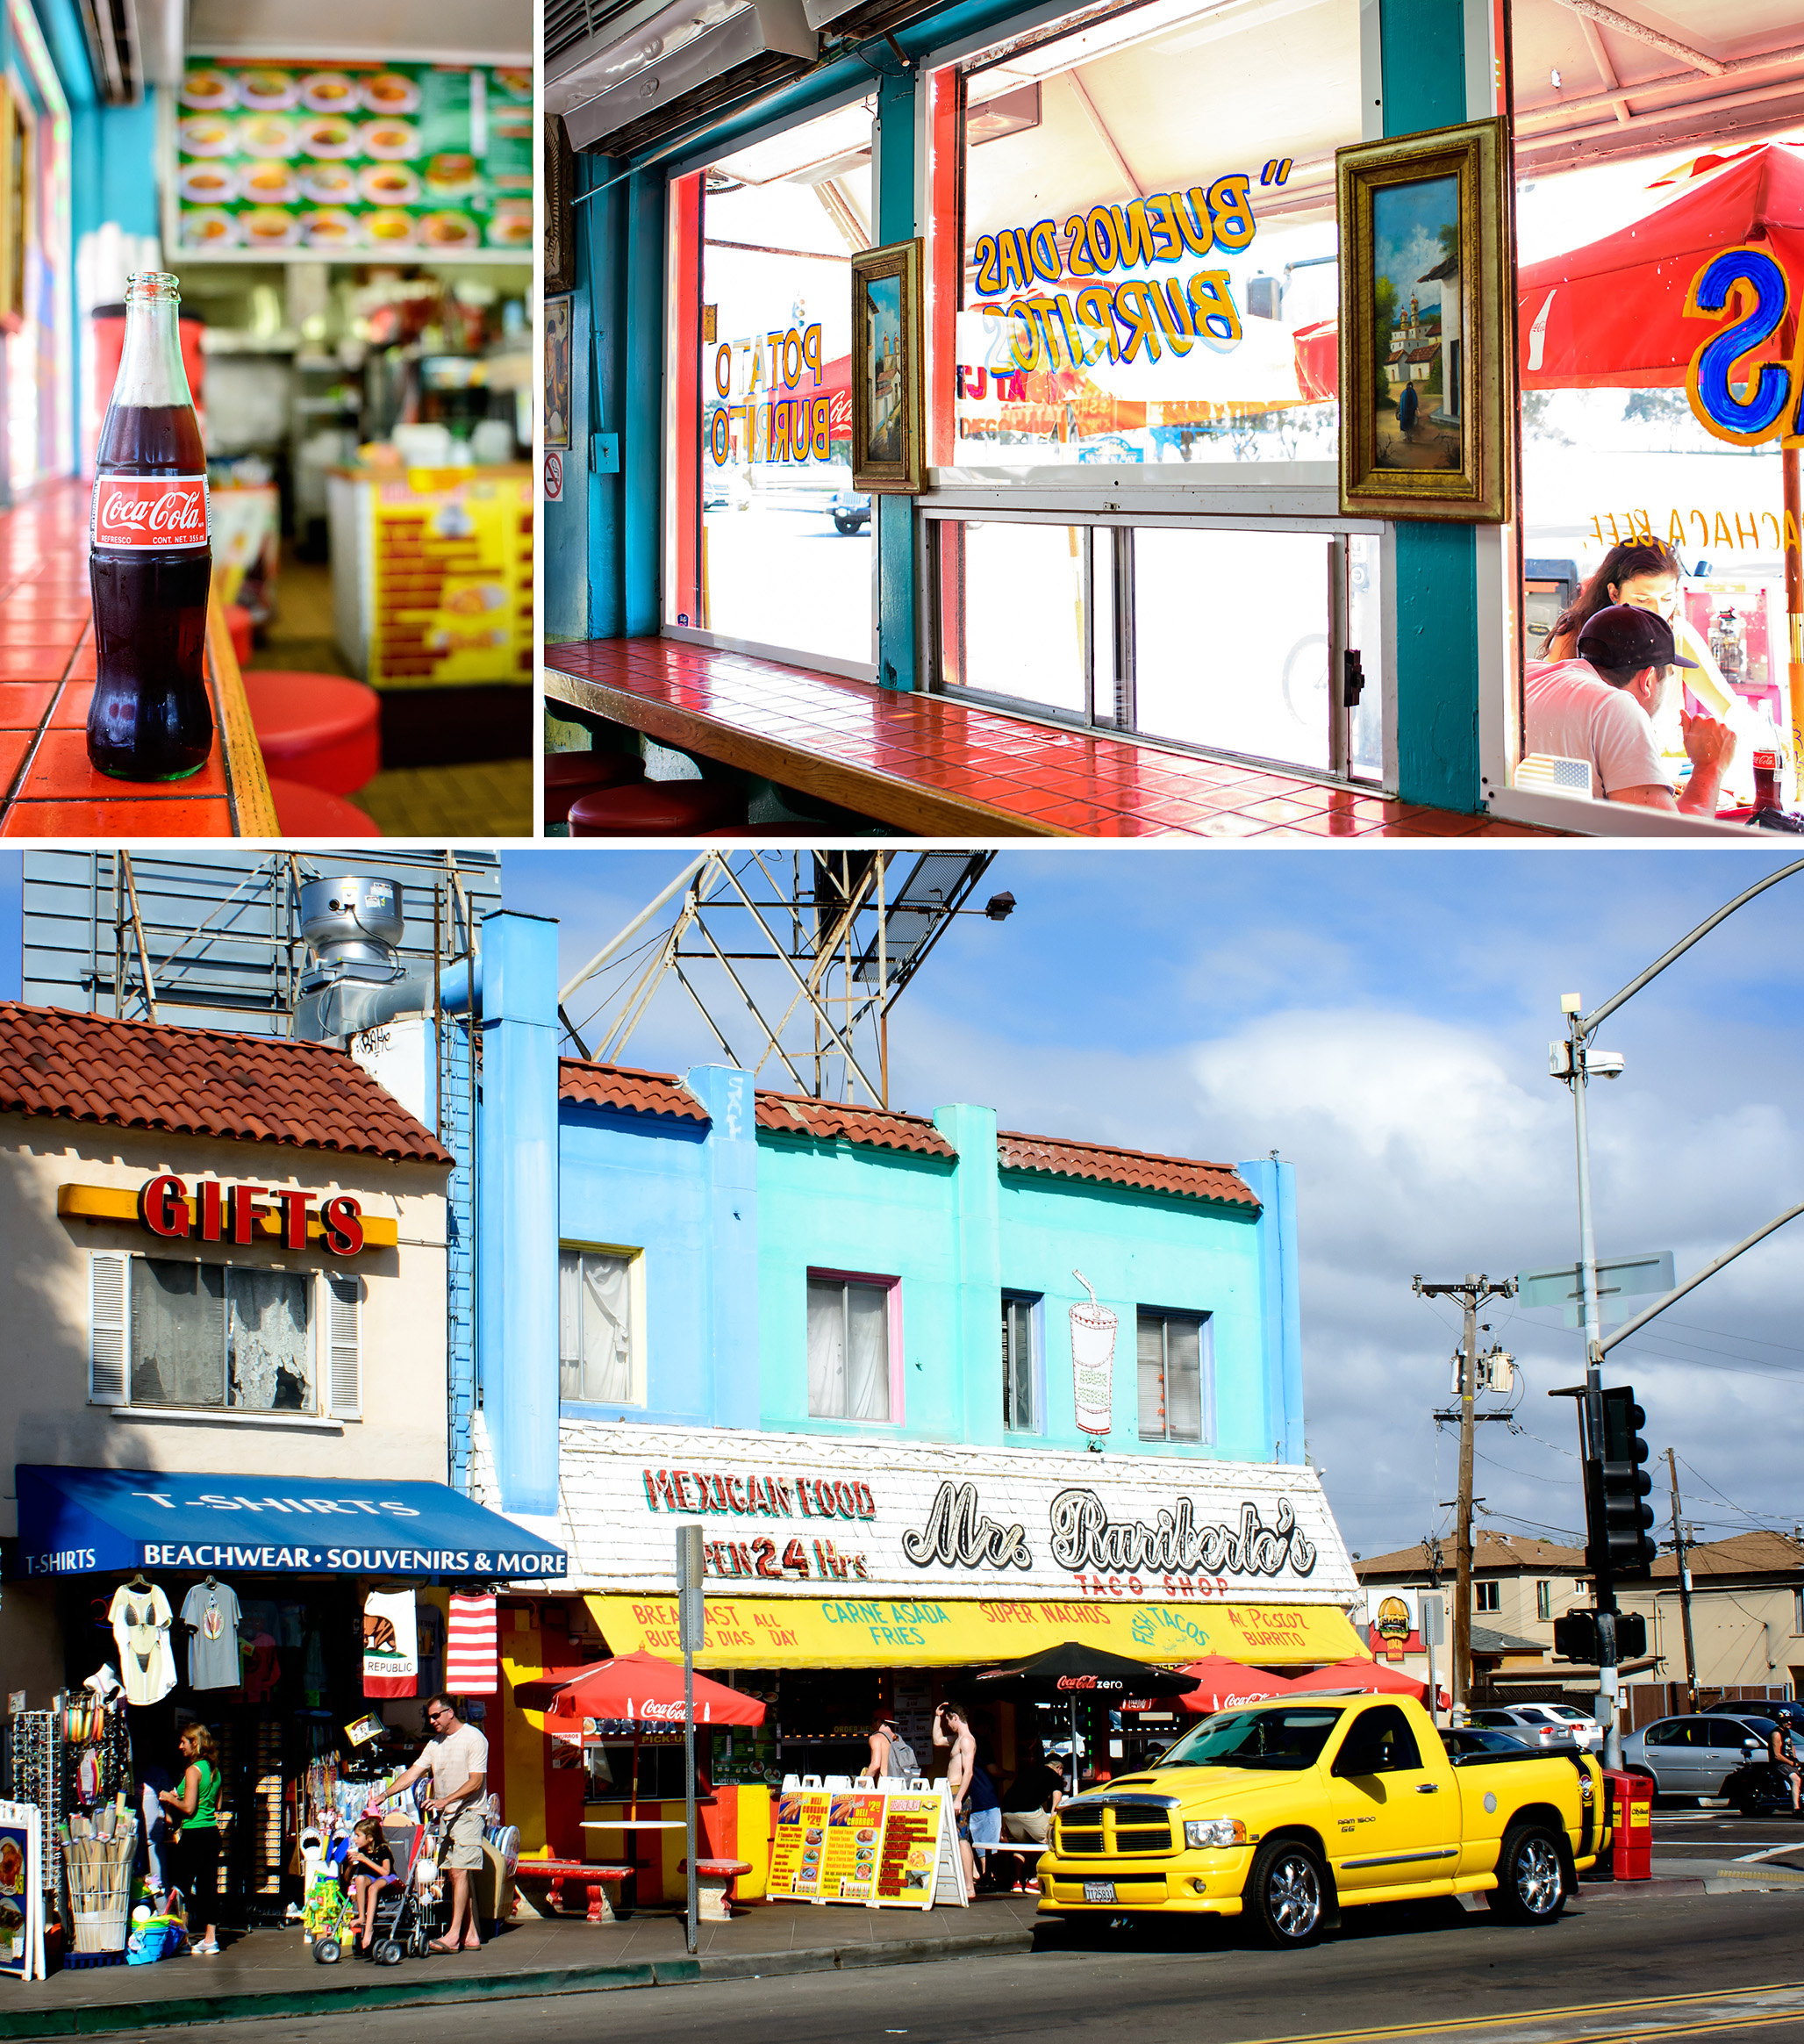 Mr. Ruribertos Taco Shop in San Diego, California (photos by Tyann Marcink)